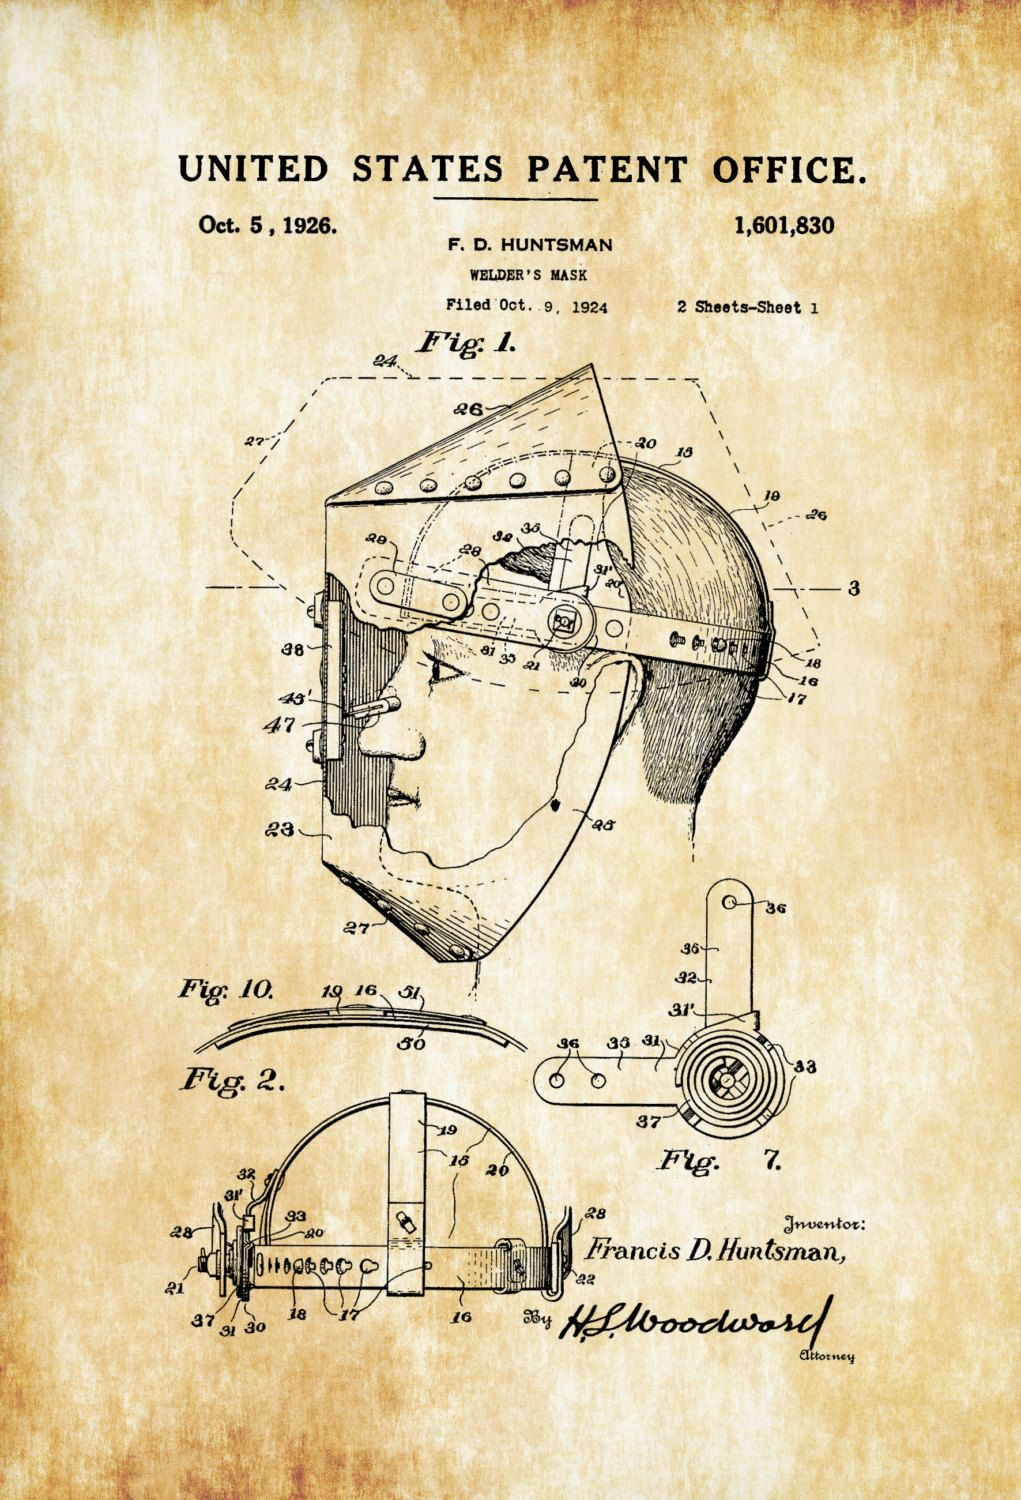 medium resolution of a patent print poster of a welder s mask invented by f d huntsman the patent was issued by the united states patent office on october 5 1926